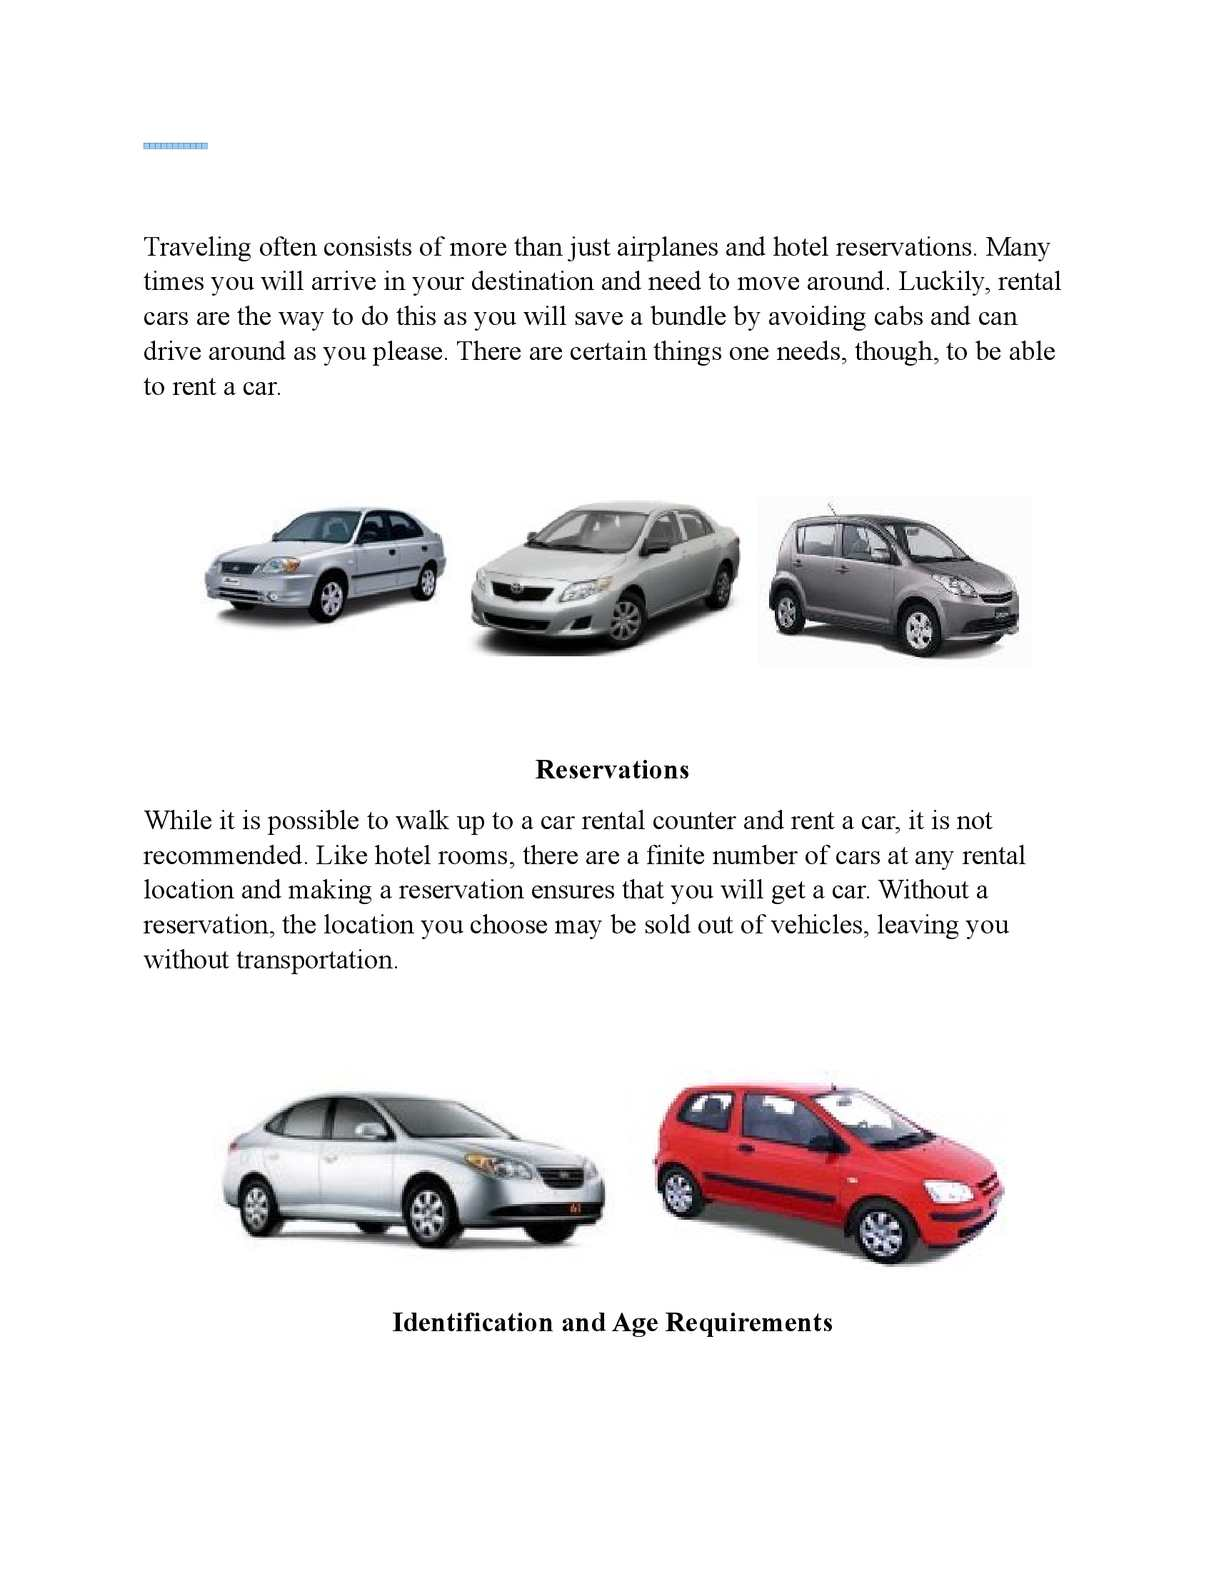 Requirements To Rent A Car >> Calameo What You Need To Rent A Vehicle